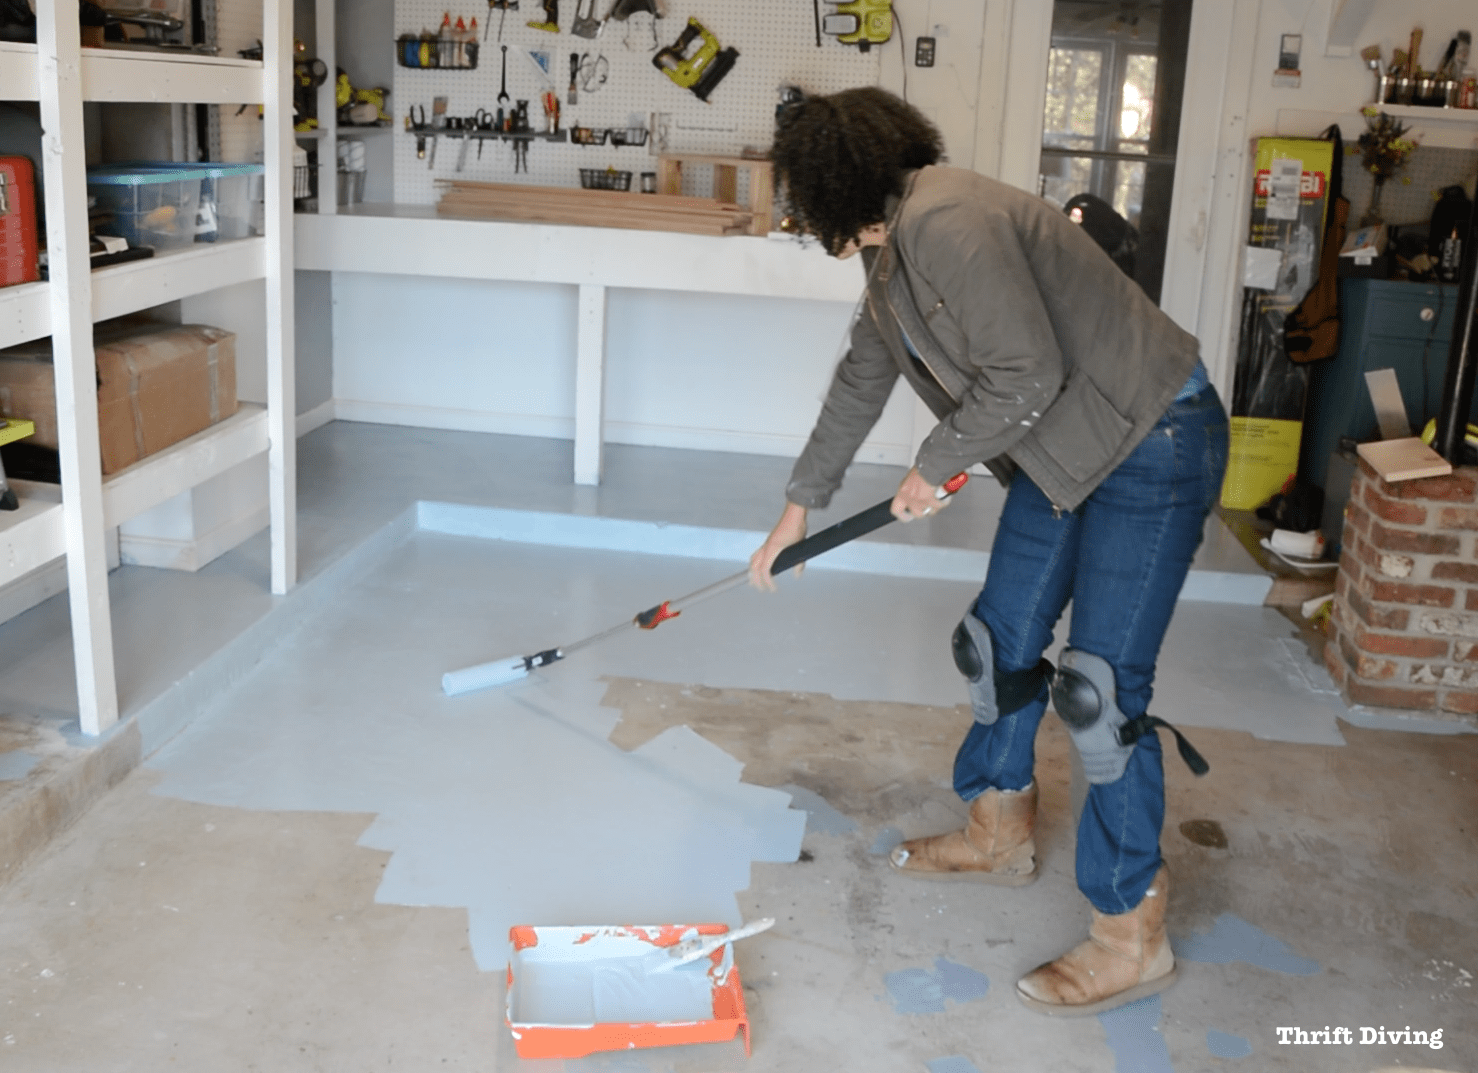 How To Paint Garage Floors With 1 Part Epoxy Paint Garage Floor Paint Garage Floor Epoxy Floor Paint